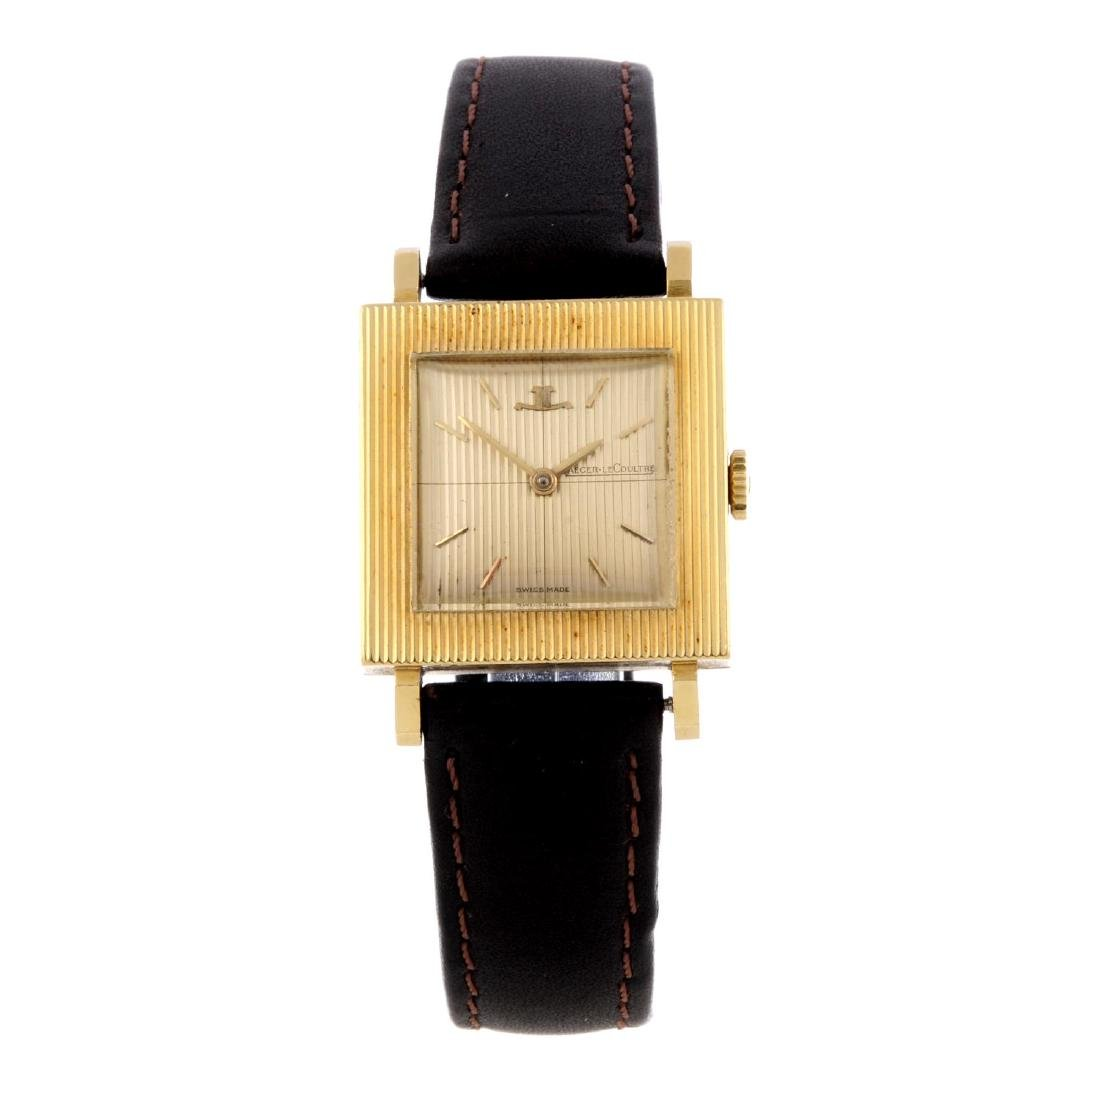 JAEGER-LECOULTRE - a wrist watch. Yellow metal case,